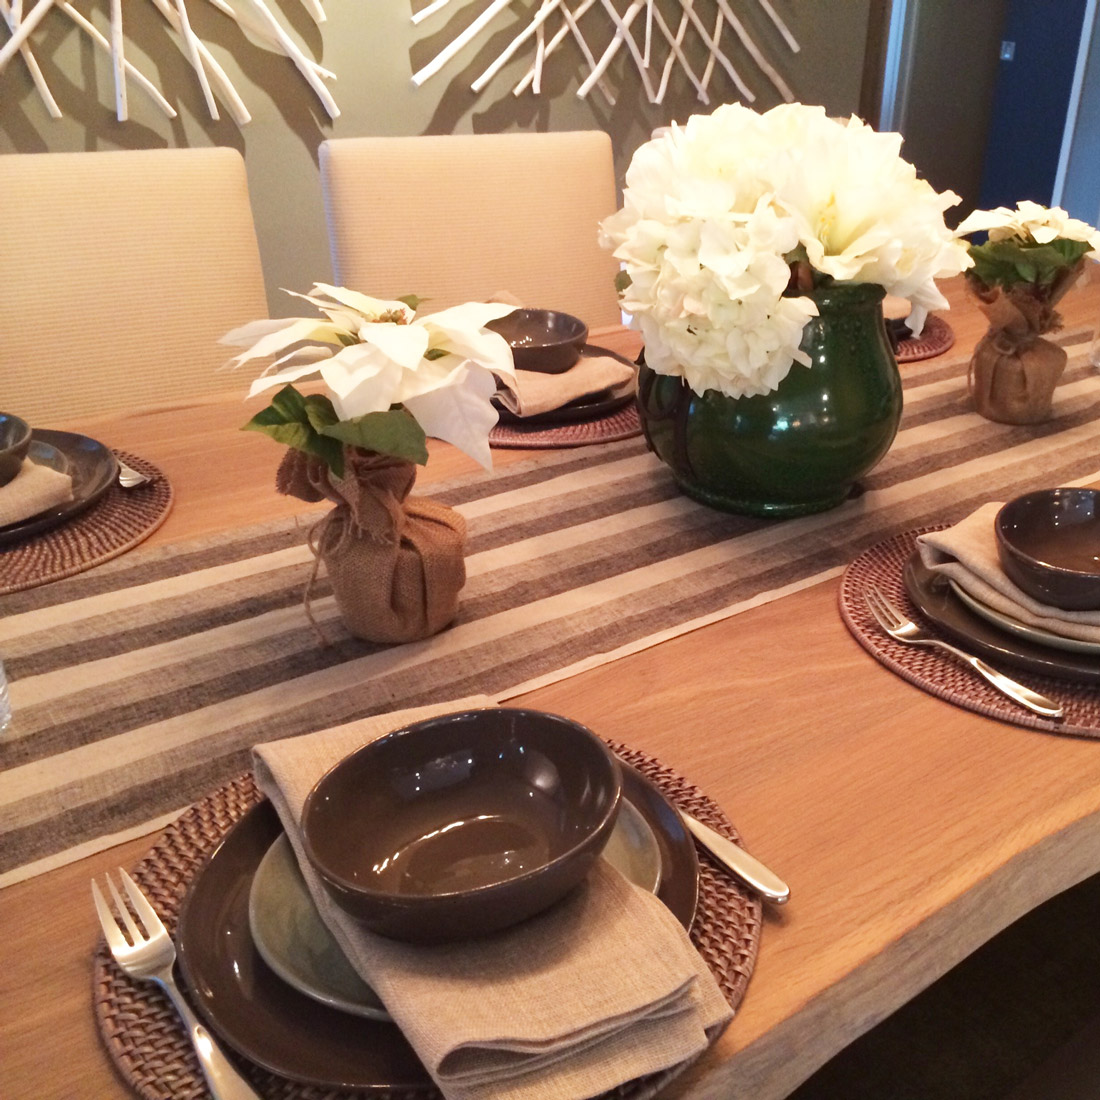 holiday table setting with stripe runner and white poinsettia centerpiece with rustic design by sara bates interior design